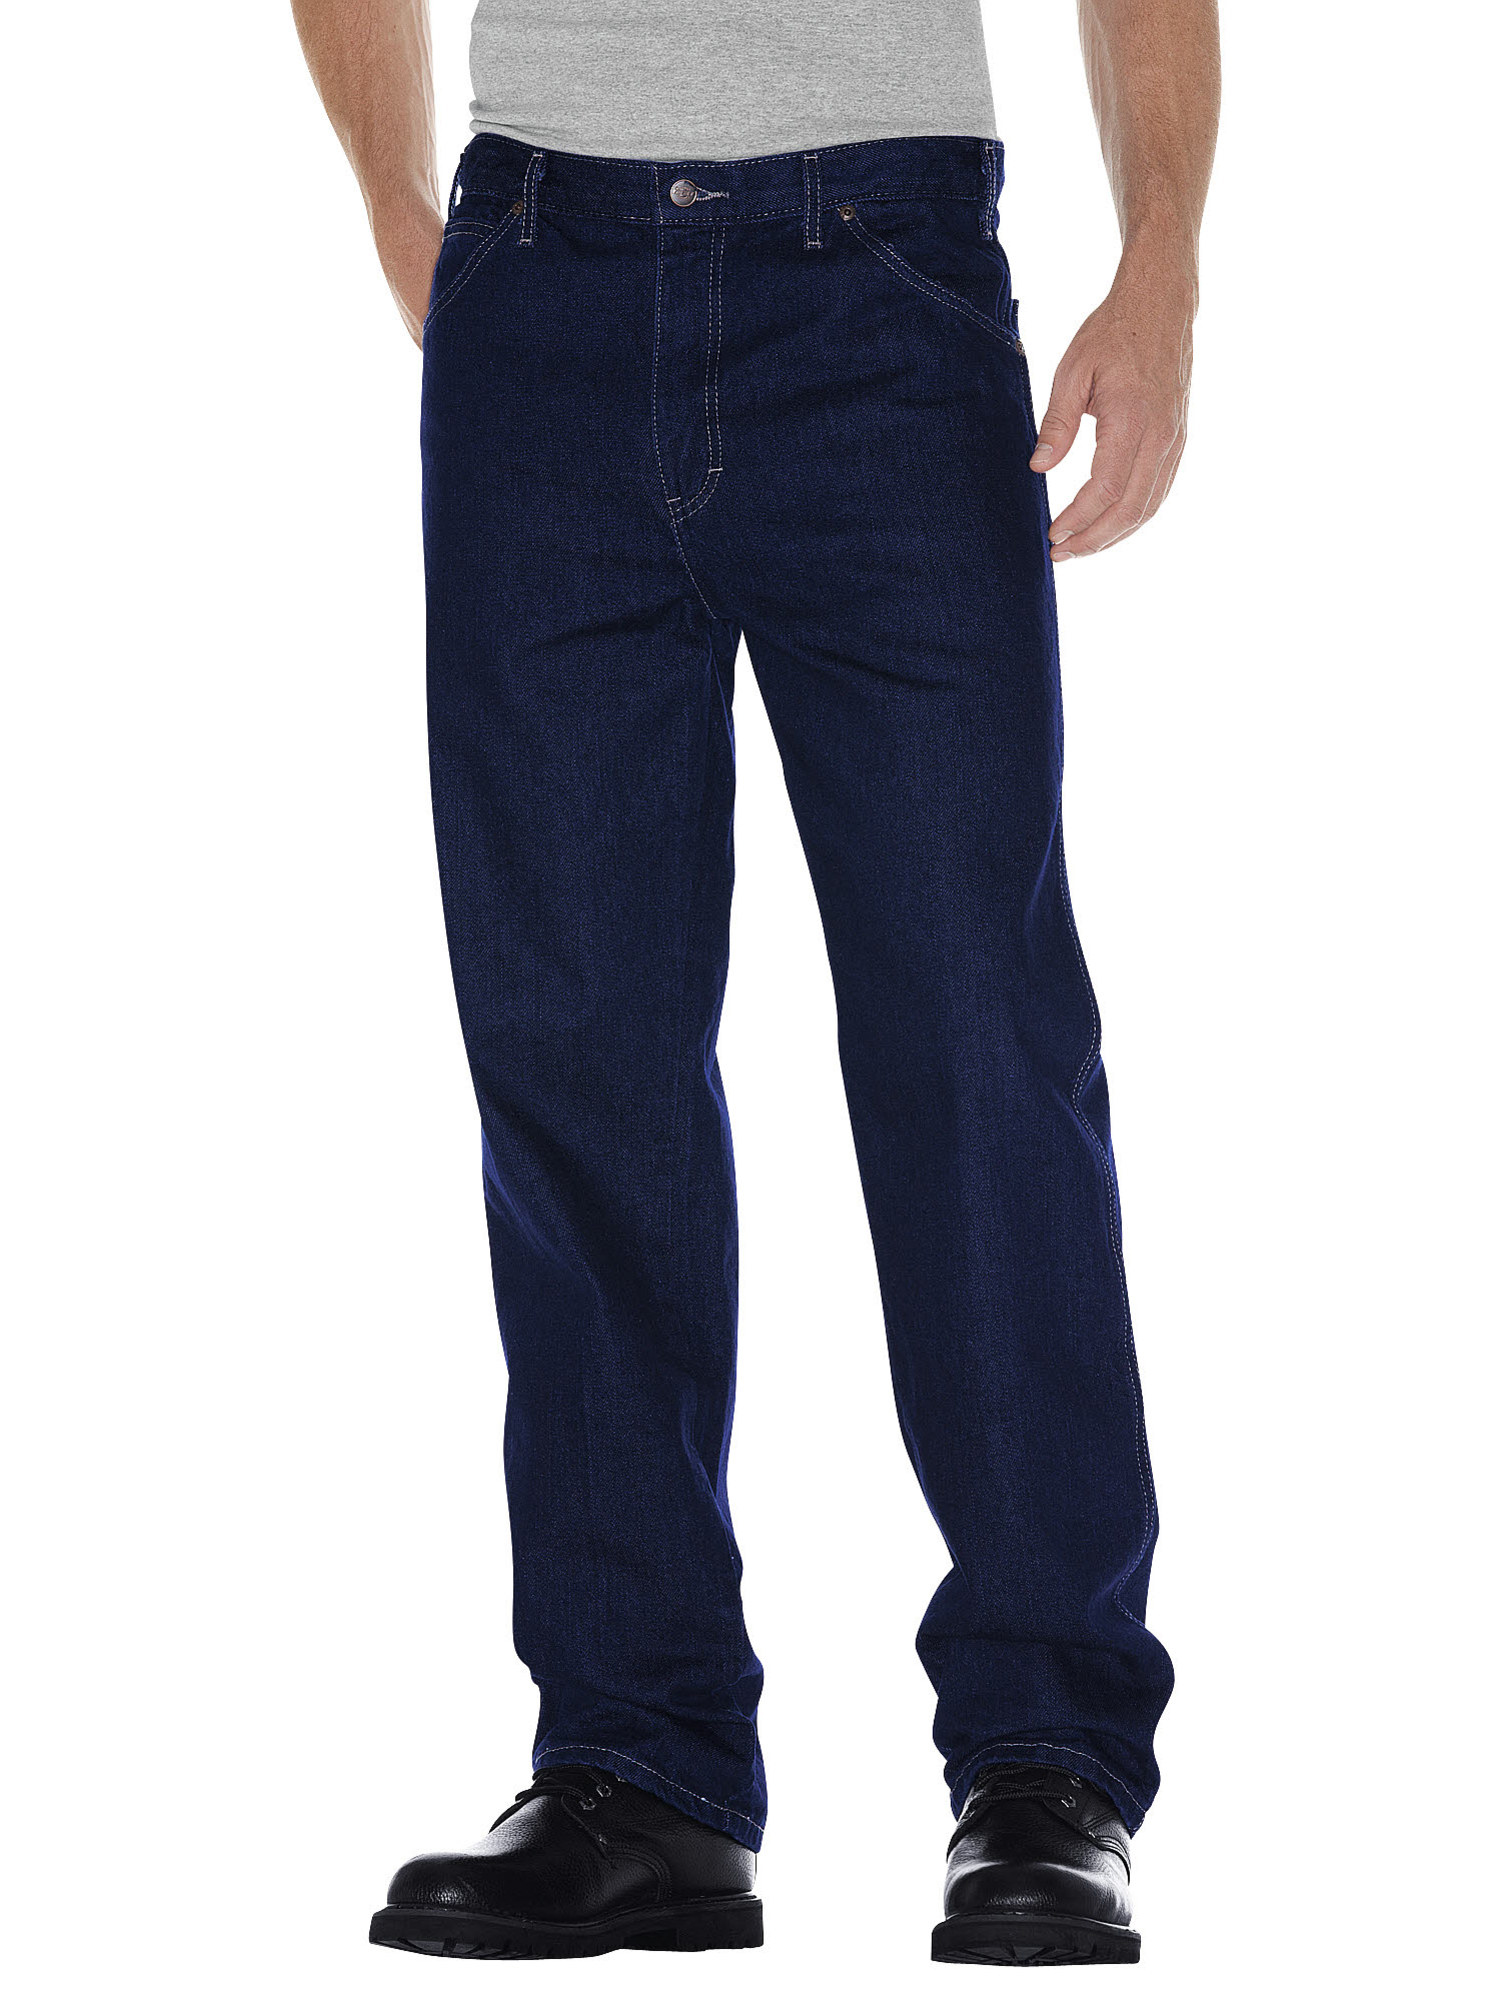 Big Men's Relaxed Straight Fit 5-Pocket Denim Jean